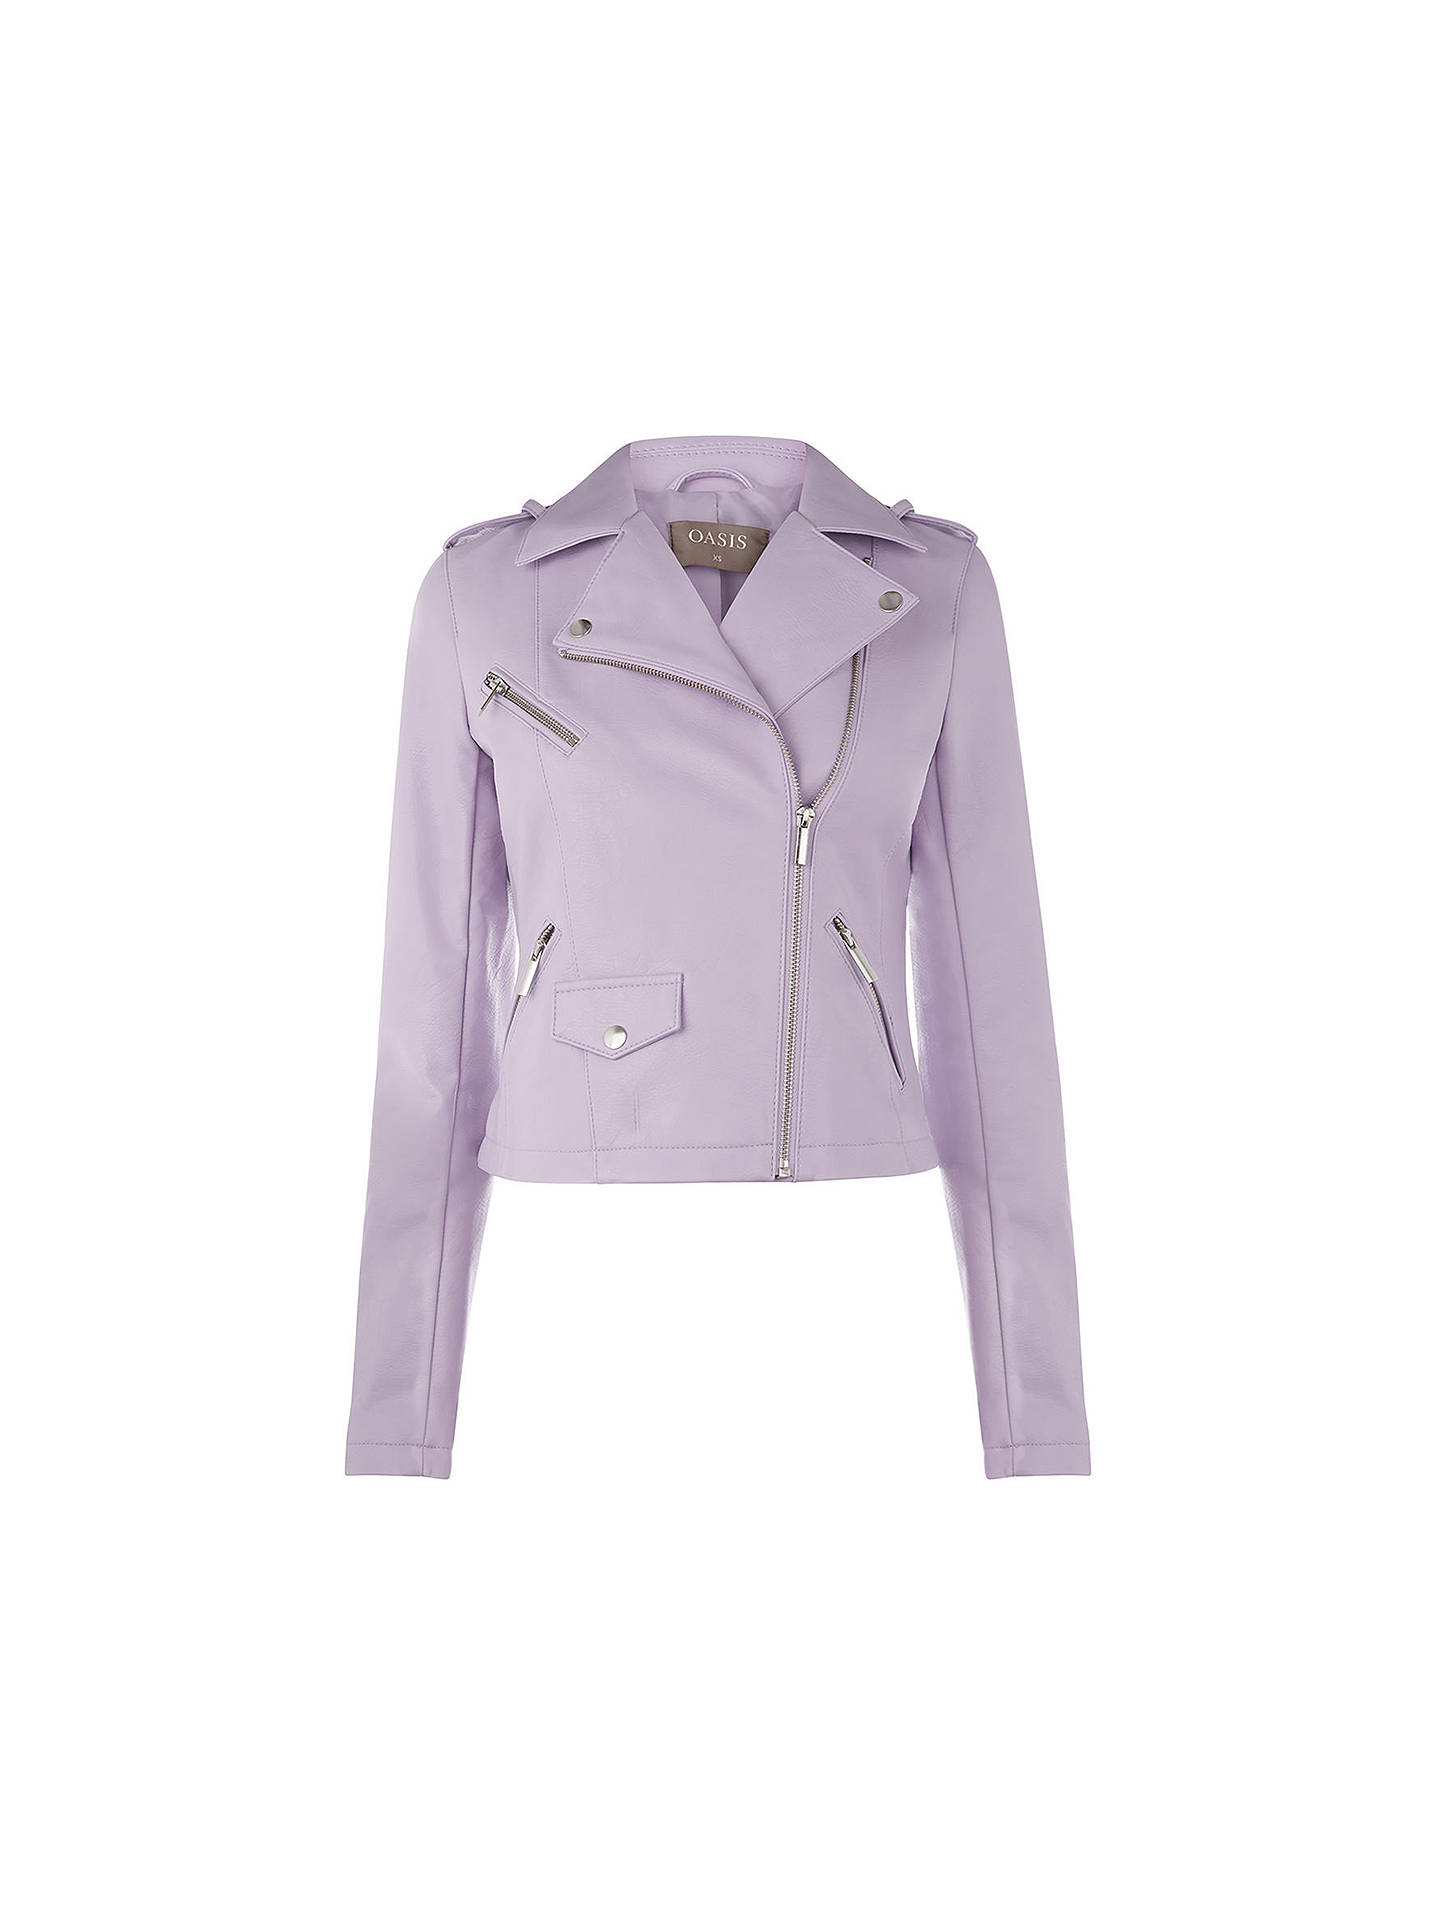 df75b824ffc6 ... Buy Oasis Lucy Faux Leather Biker Jacket, Lilac, XS Online at  johnlewis.com ...